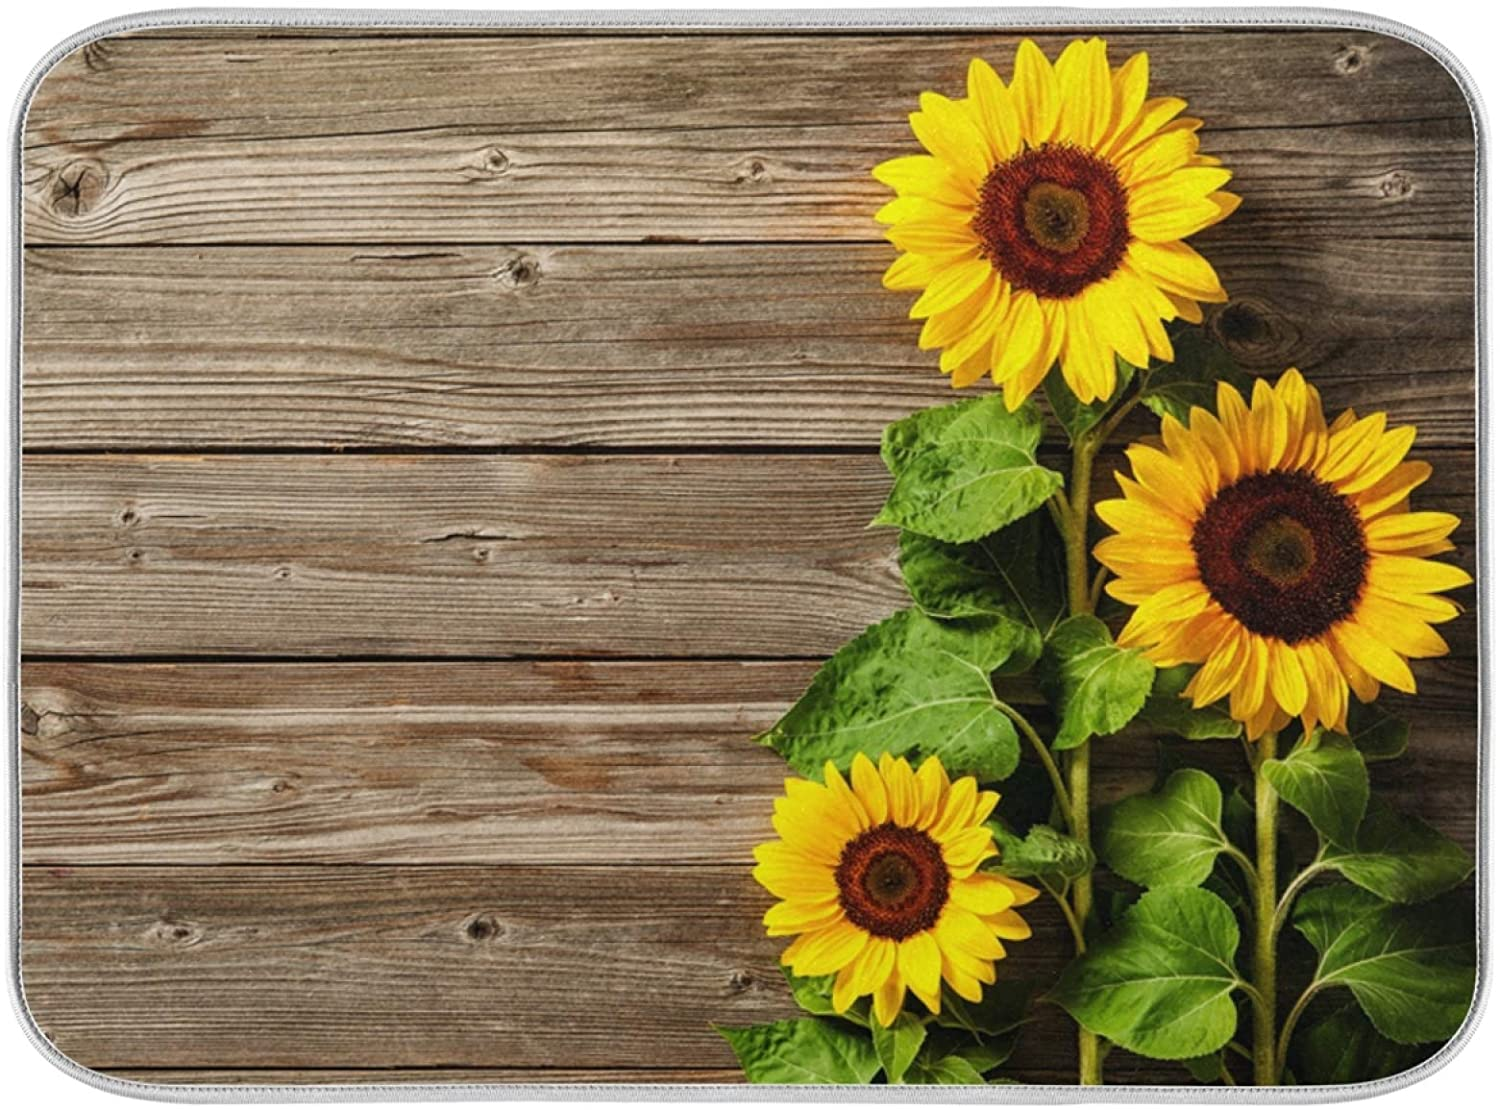 Absorbent Dish Drying Mat Sunflowers Wood Board Print Dishes Drainer Protector Pad Pot Holder Pet Mat with Hanging Loop for Kitchen Countertops Sinks Refrigerator 16 x 18 Inch